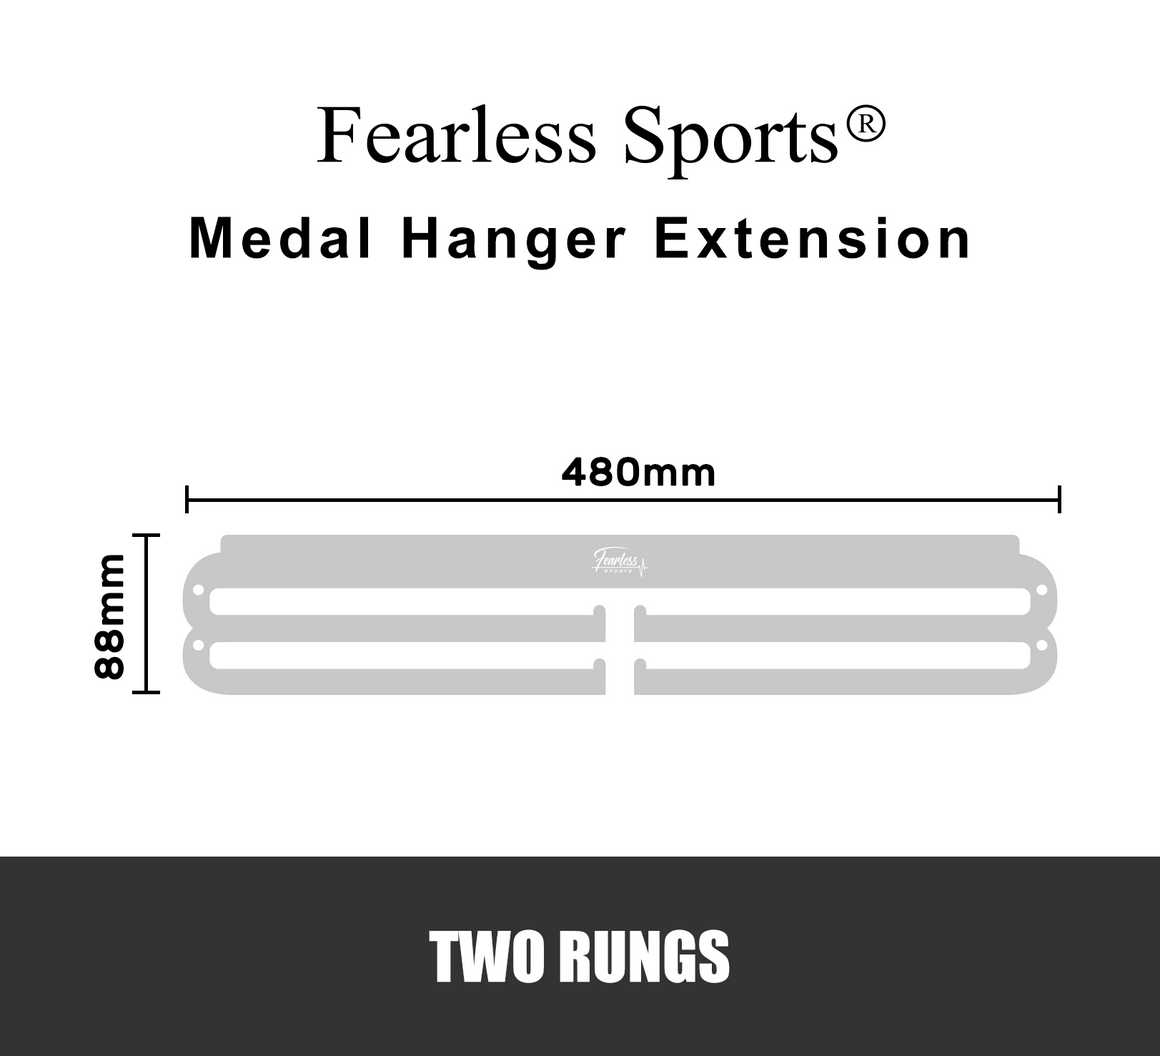 Fearless Sports Two Rungs Medal Hanger Medal Display Extension … - Fearless Sports